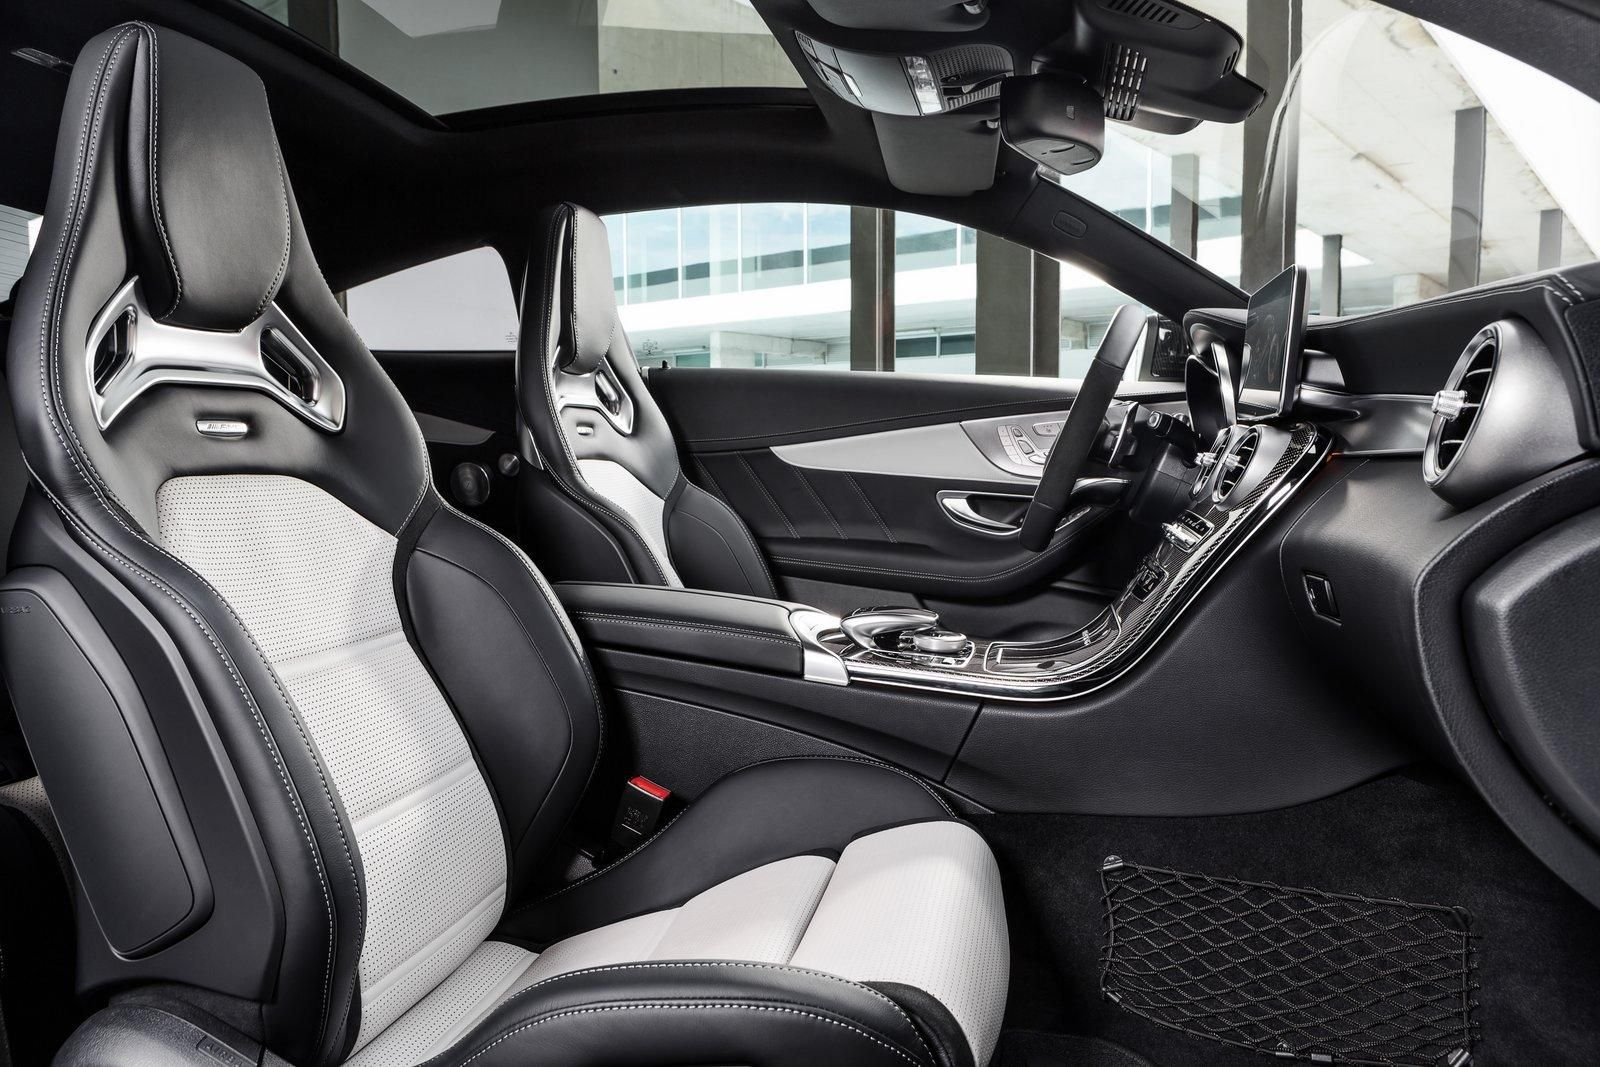 Mercedes Amg C63s Amg Coupe Interior Mercedes Benz C63 Amg